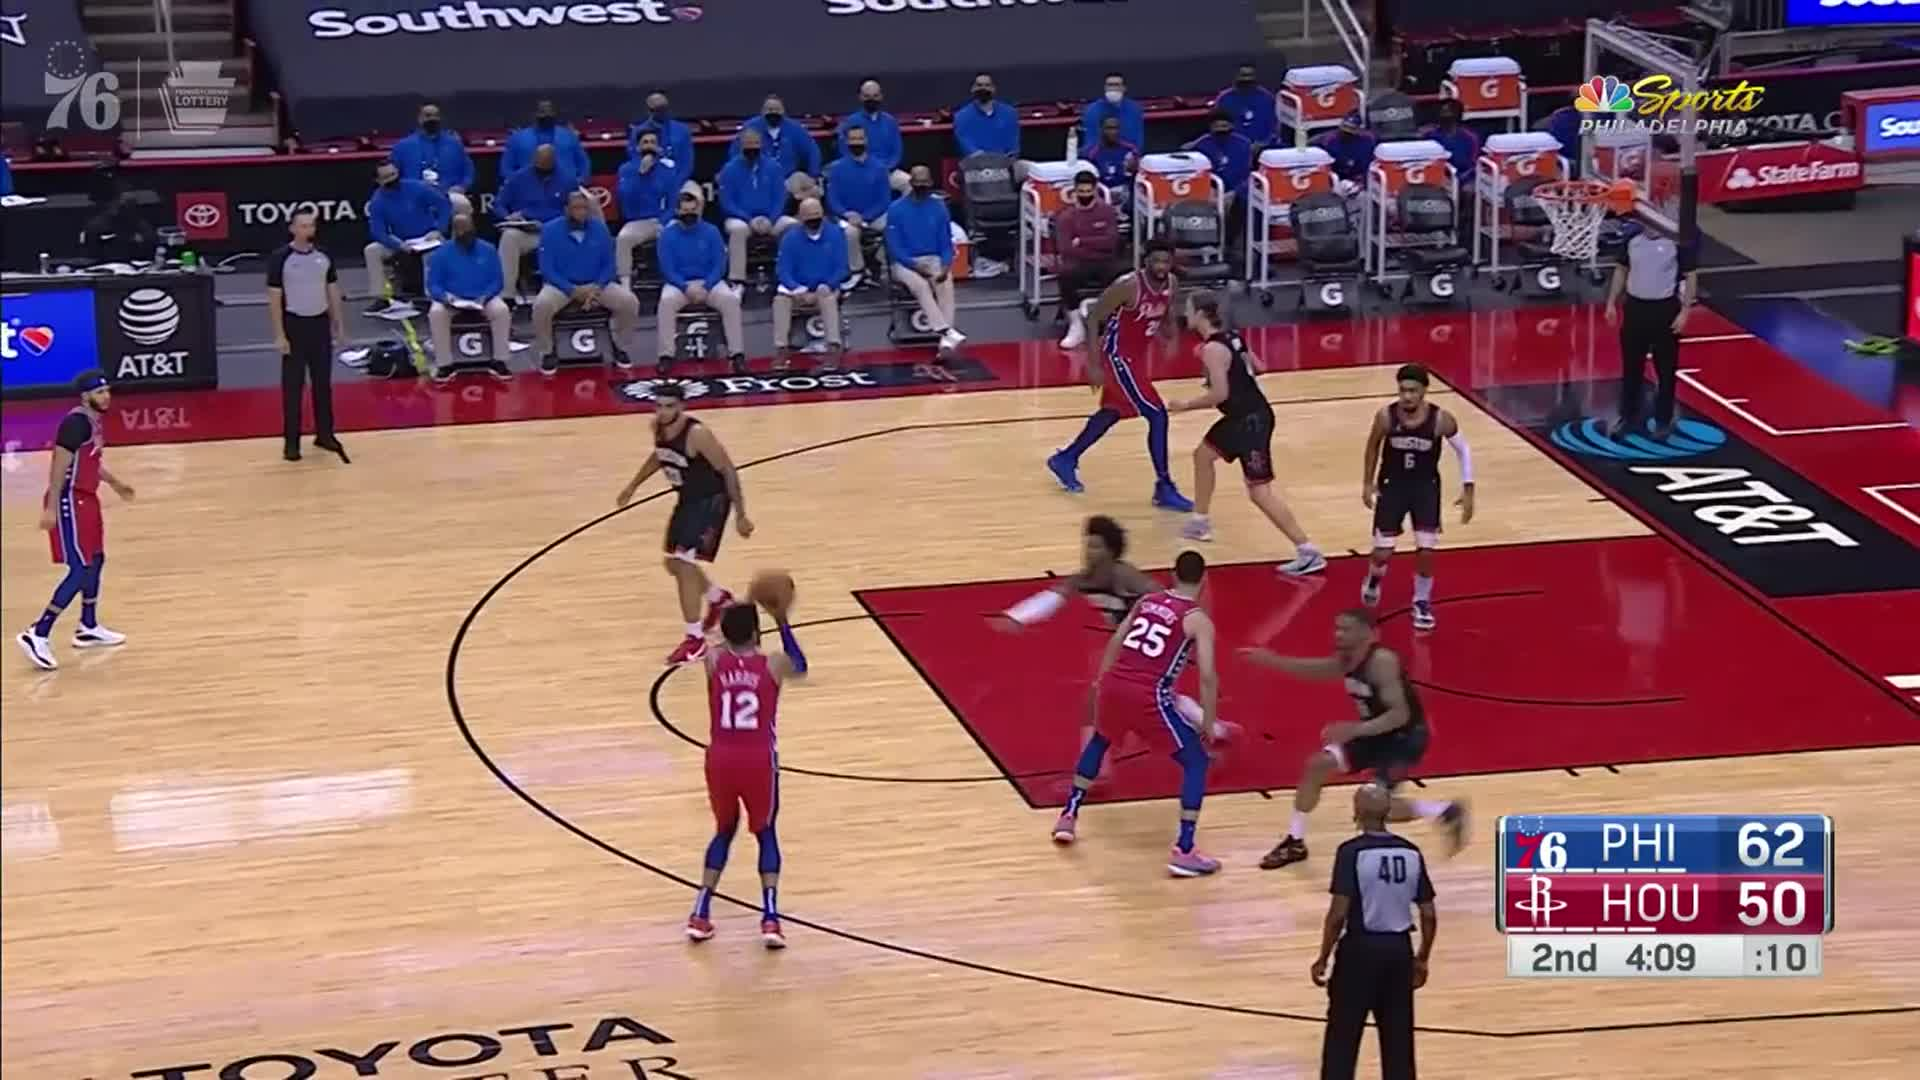 Highlights | 76ers @ Rockets (05.05.21)